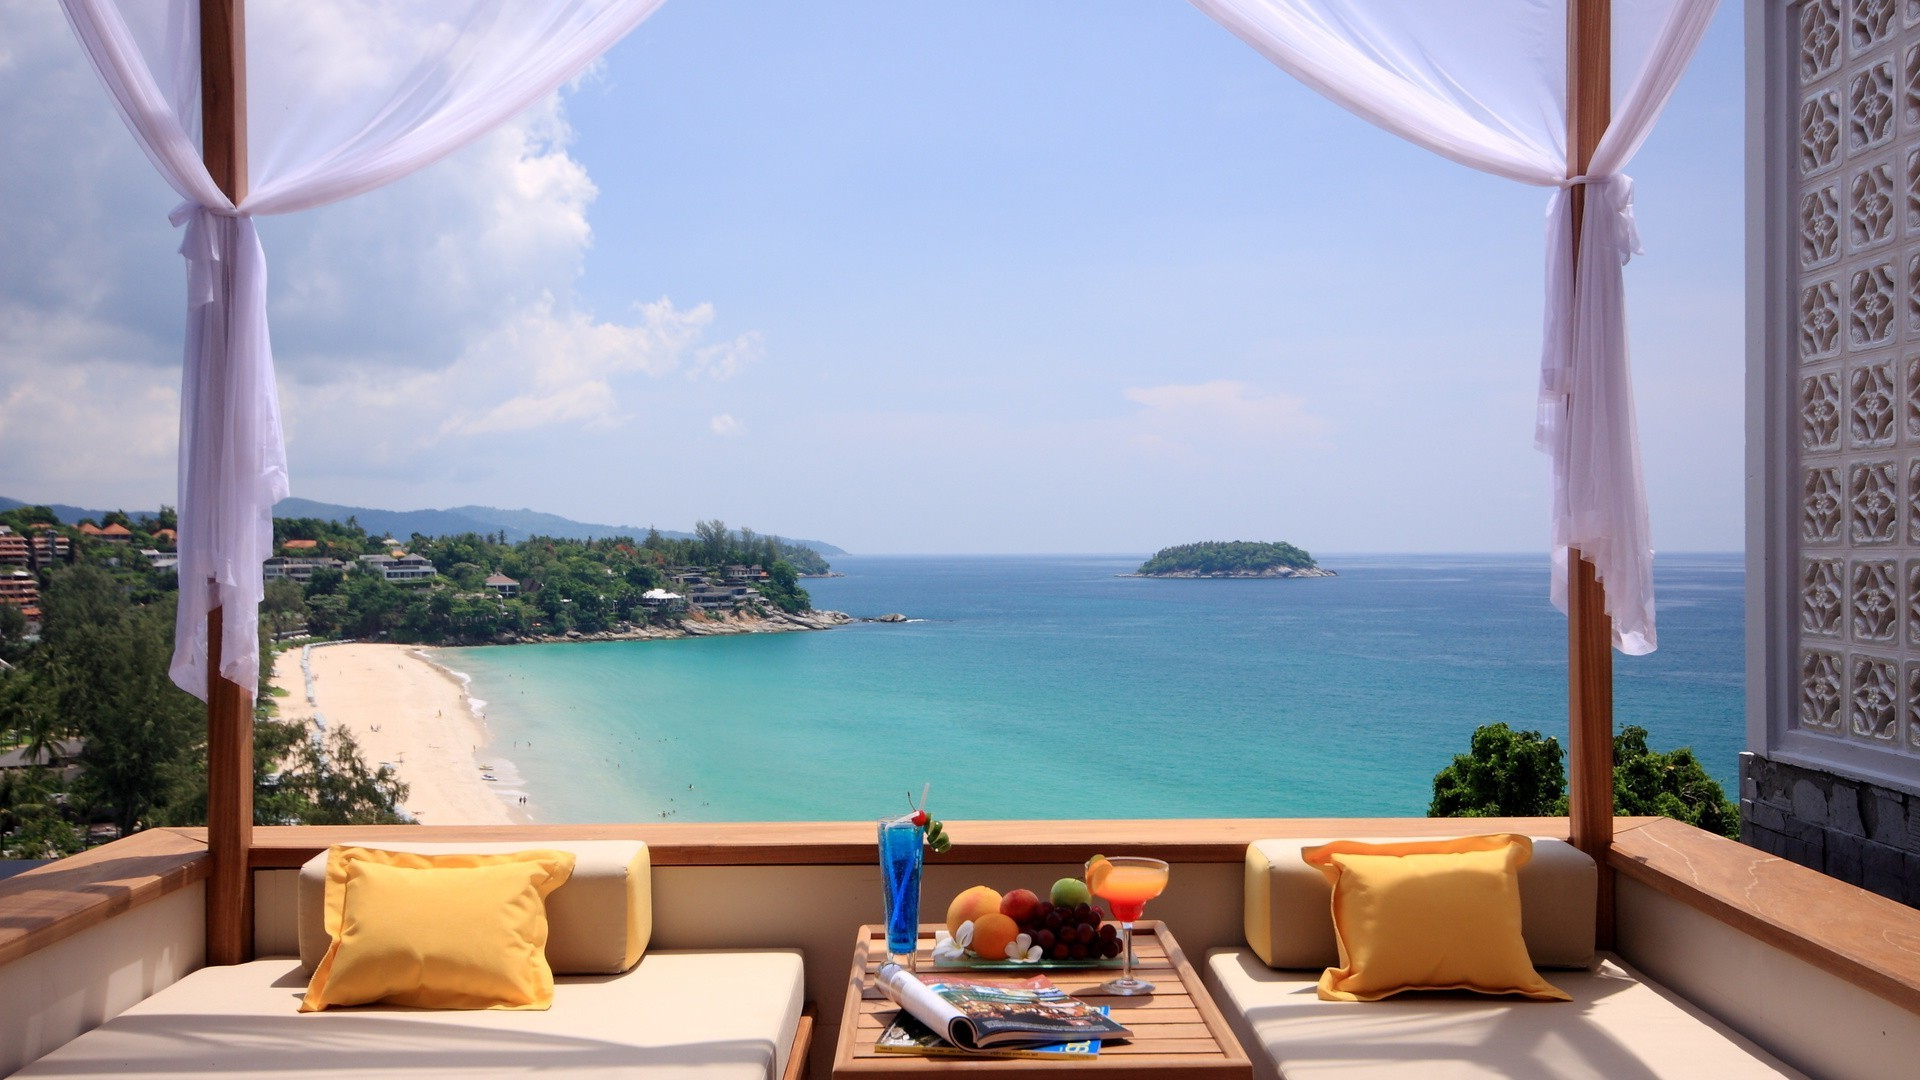 terrace summer travel tropical relaxation luxury chair water sky vacation sand idyllic sun hotel nature beach fair weather ocean exotic sea